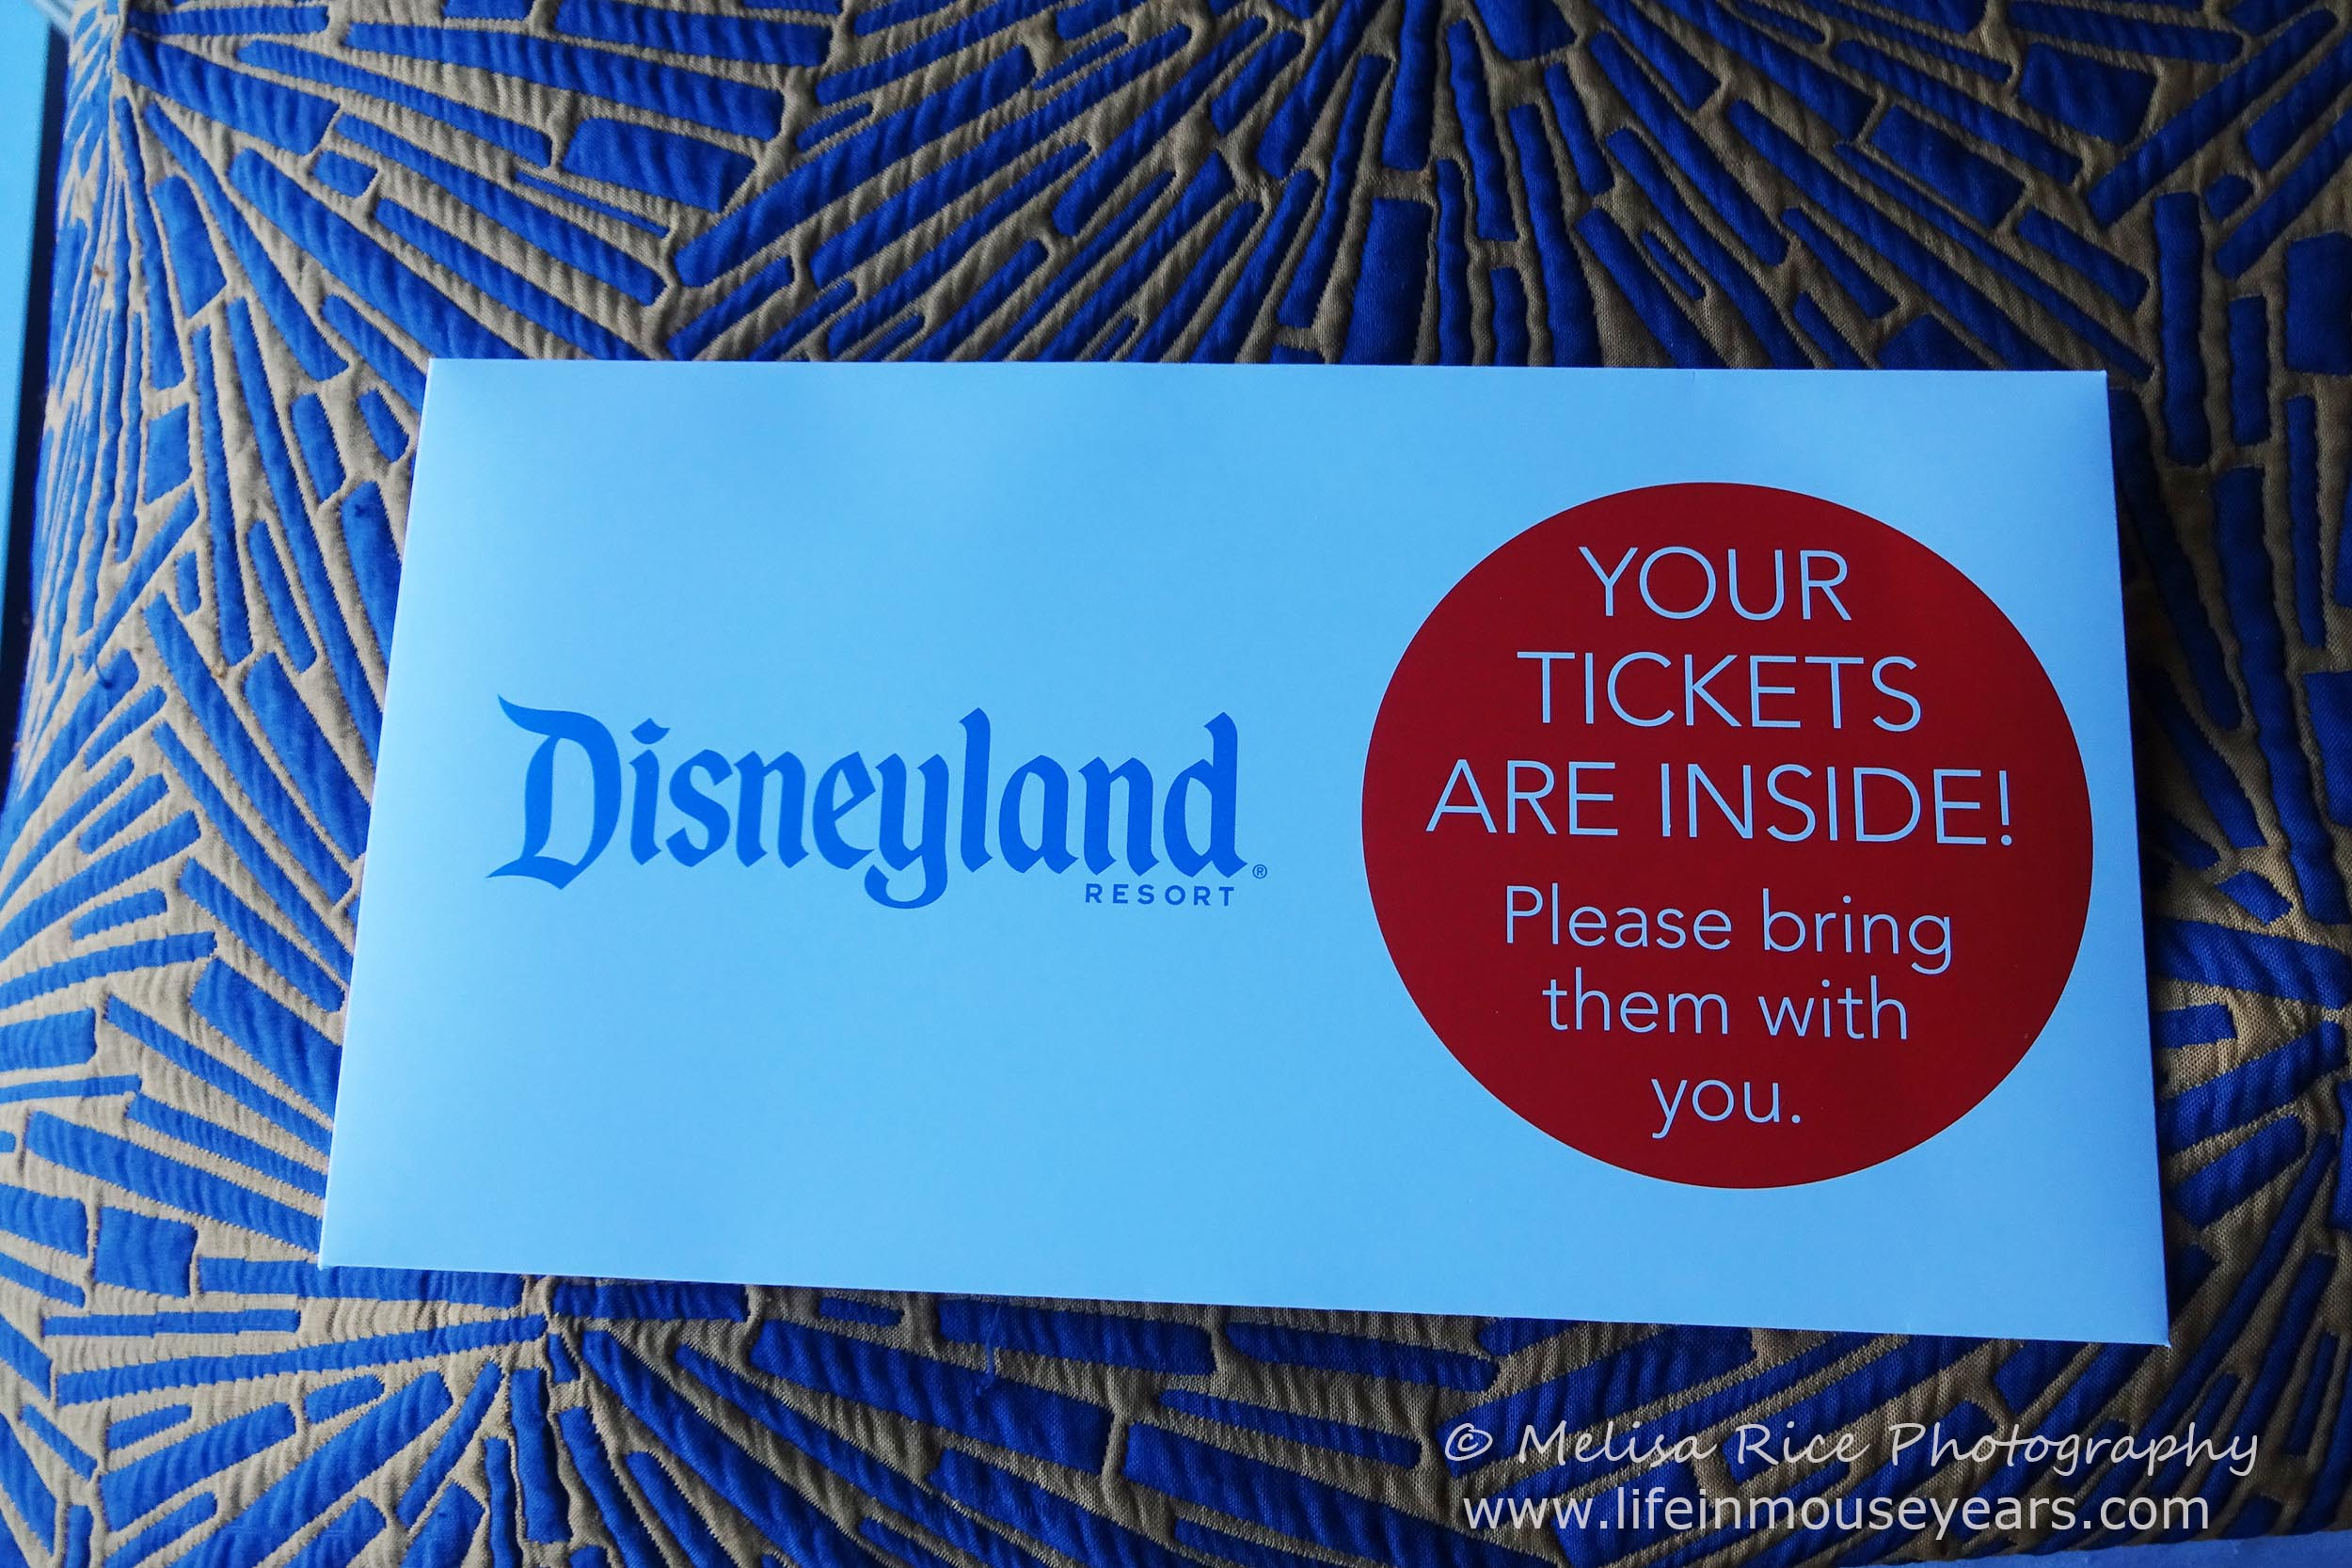 Costco Travel Disneyland Vacation Package Perks 2019